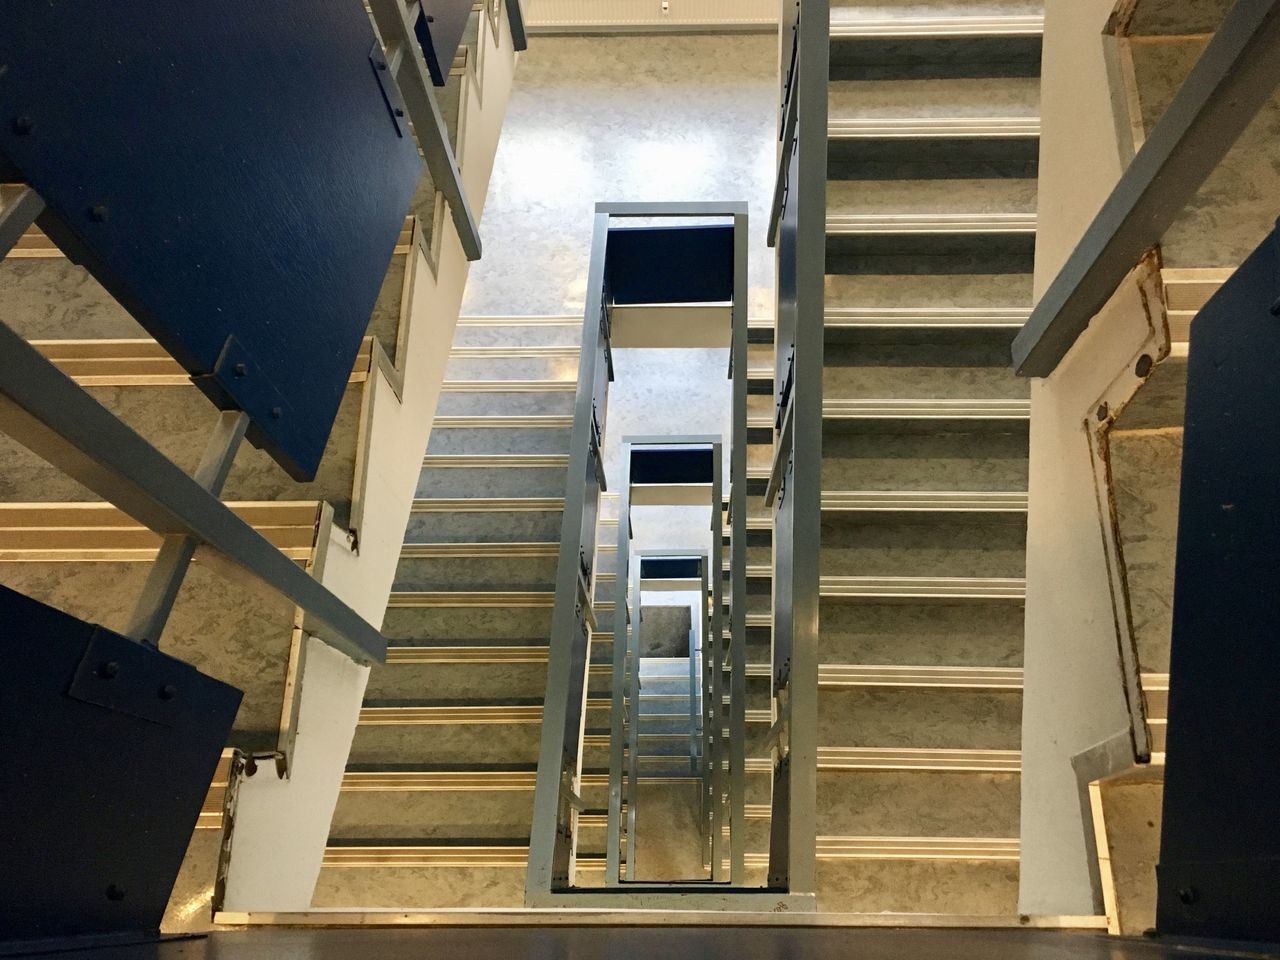 staircase, steps and staircases, steps, railing, indoors, built structure, architecture, stairs, hand rail, no people, day